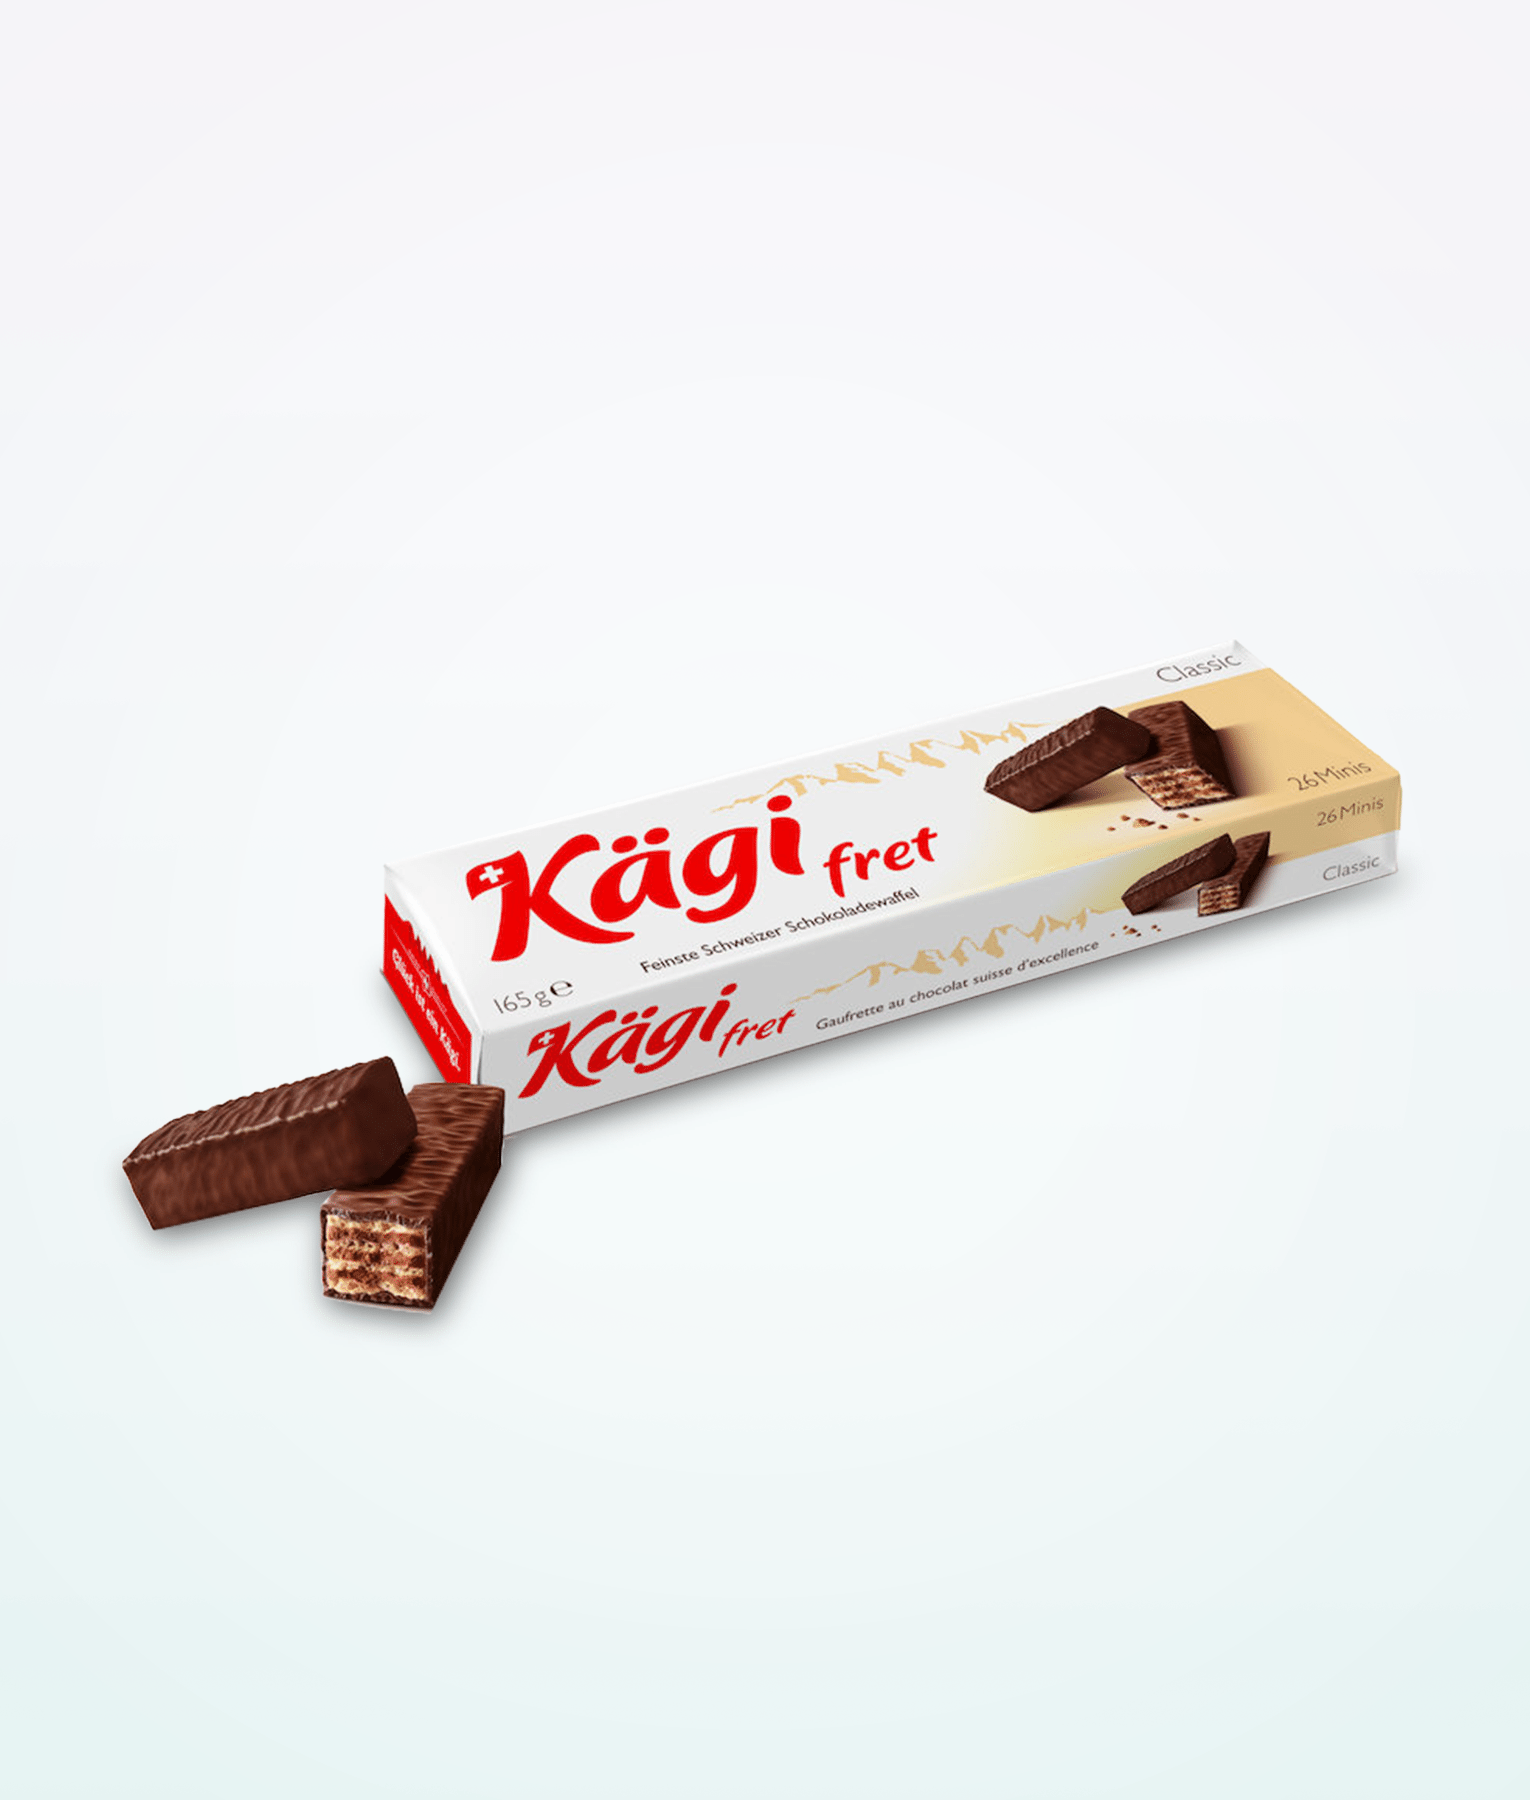 kaegi-fret-wafers-mini